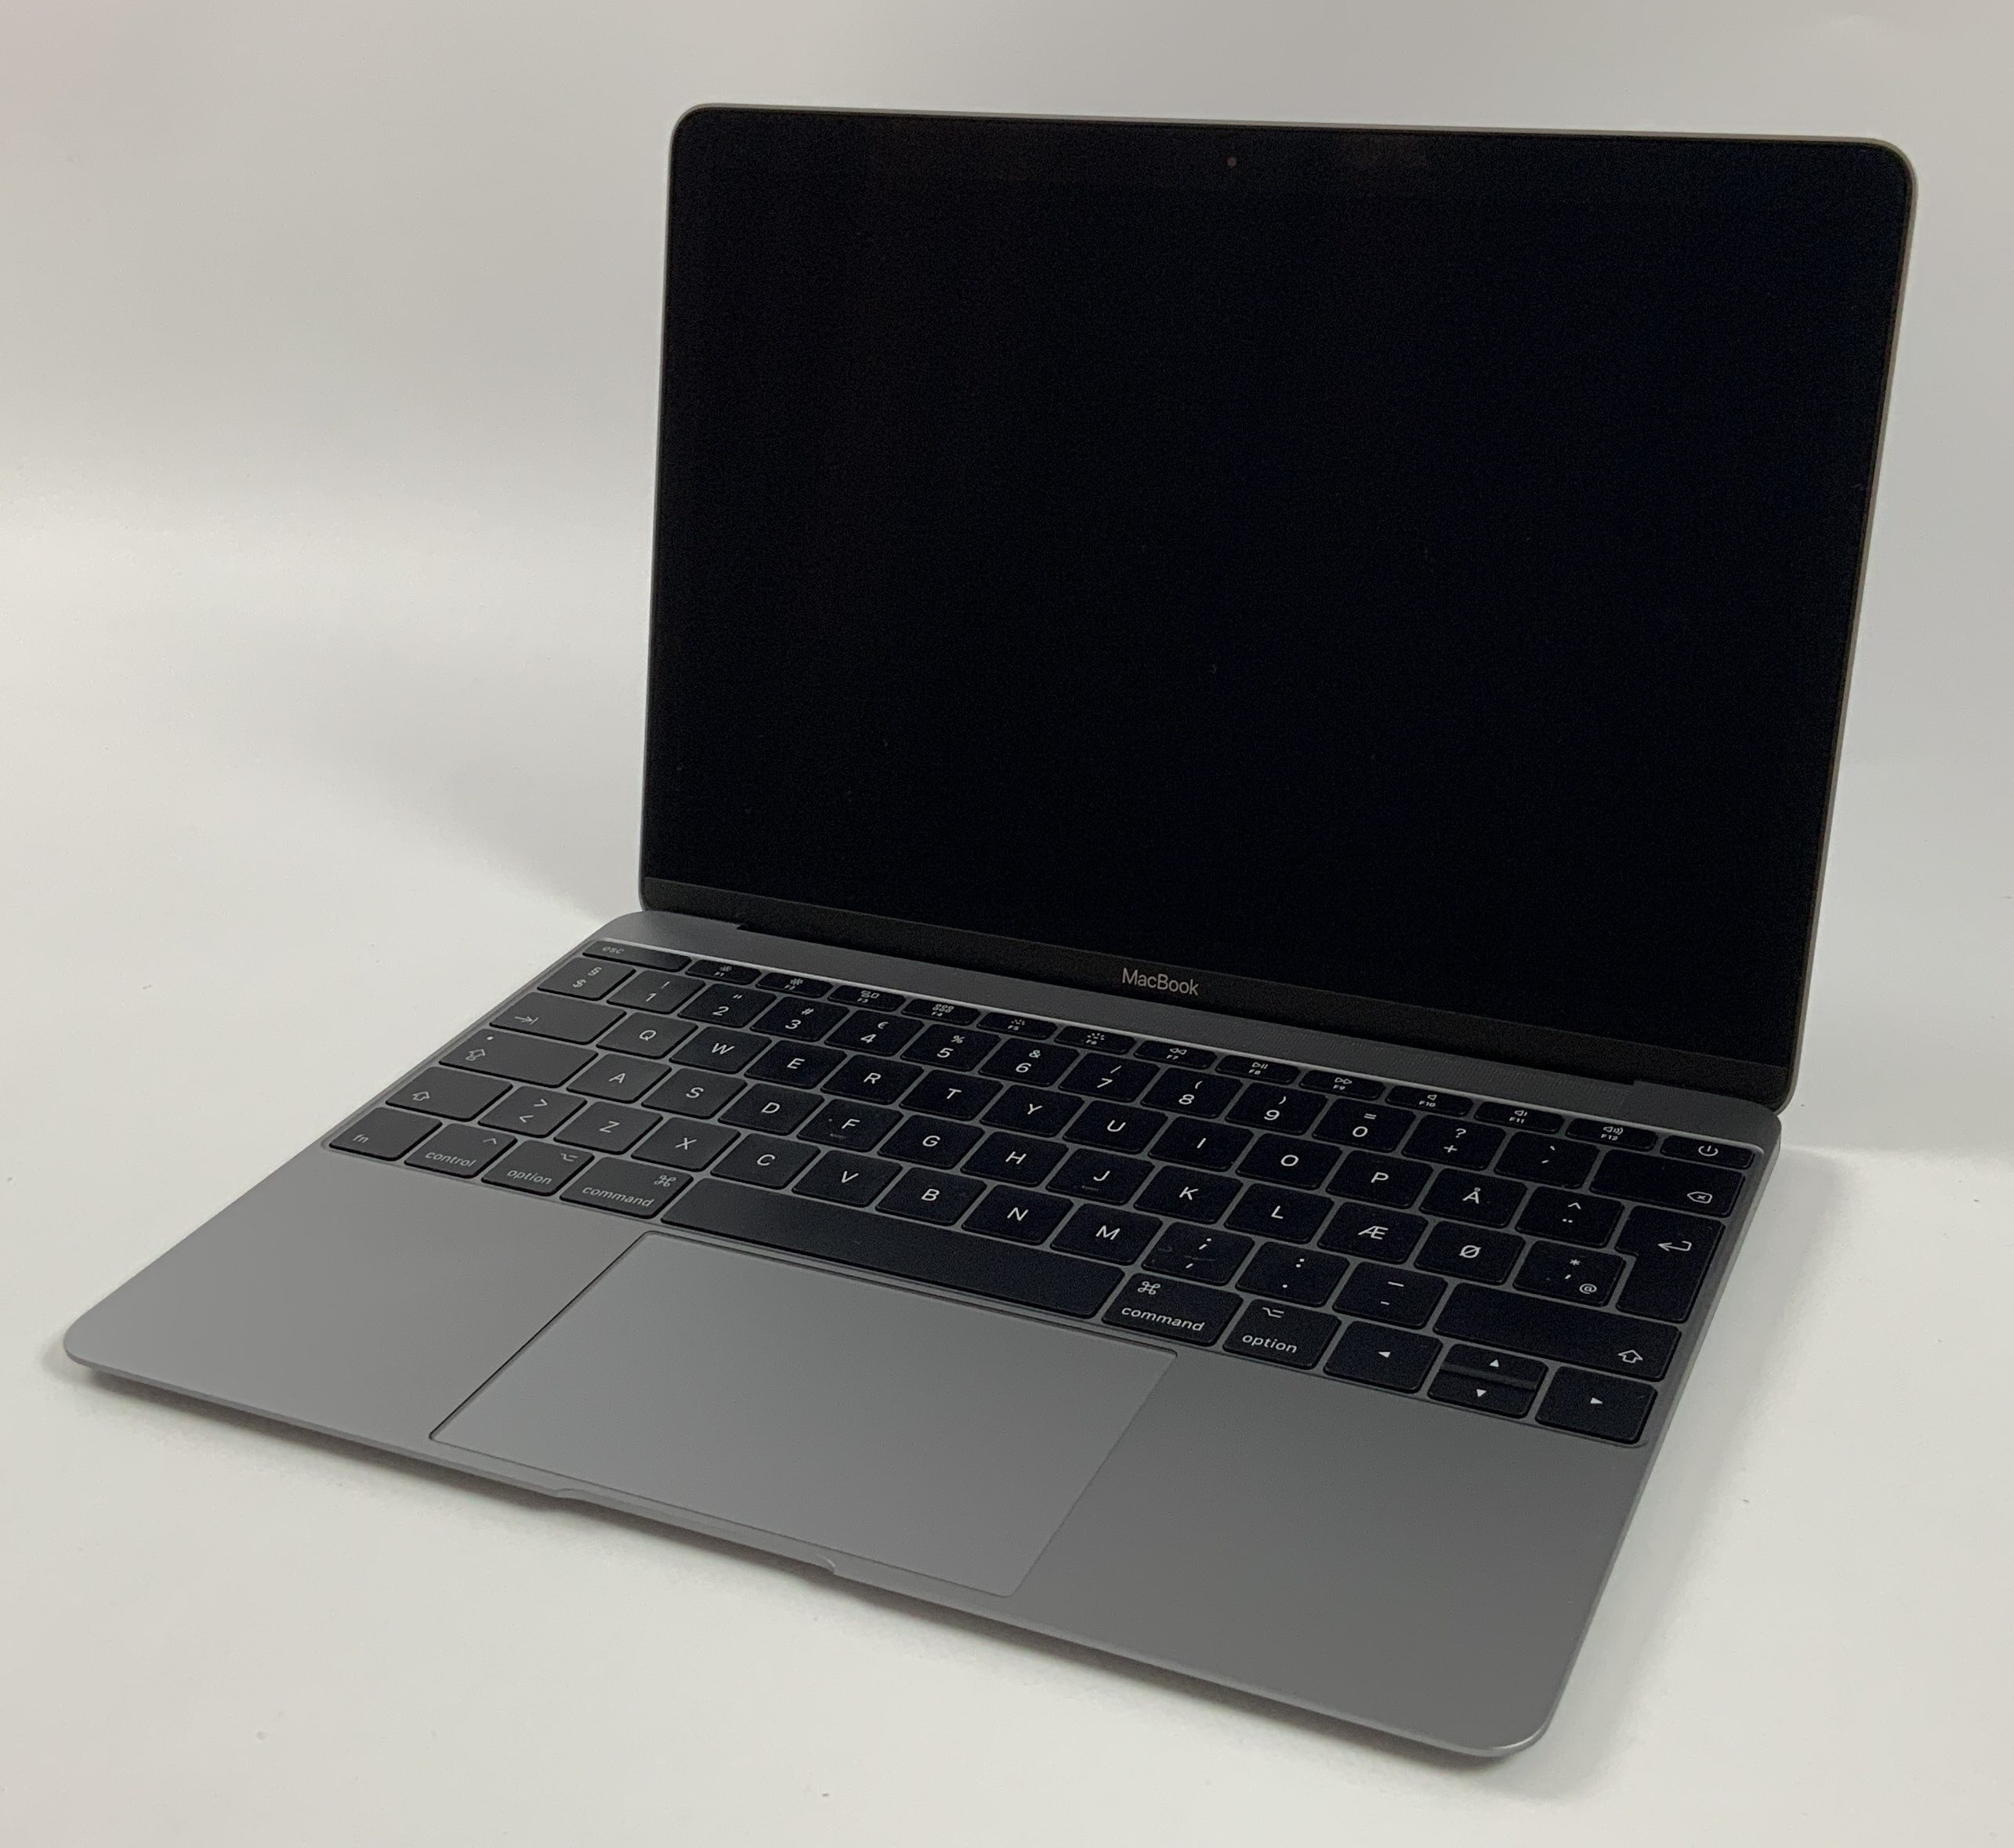 "MacBook 12"" Mid 2017 (Intel Core i5 1.3 GHz 8 GB RAM 512 GB SSD), Space Gray, Intel Core i5 1.3 GHz, 8 GB RAM, 512 GB SSD, bild 1"